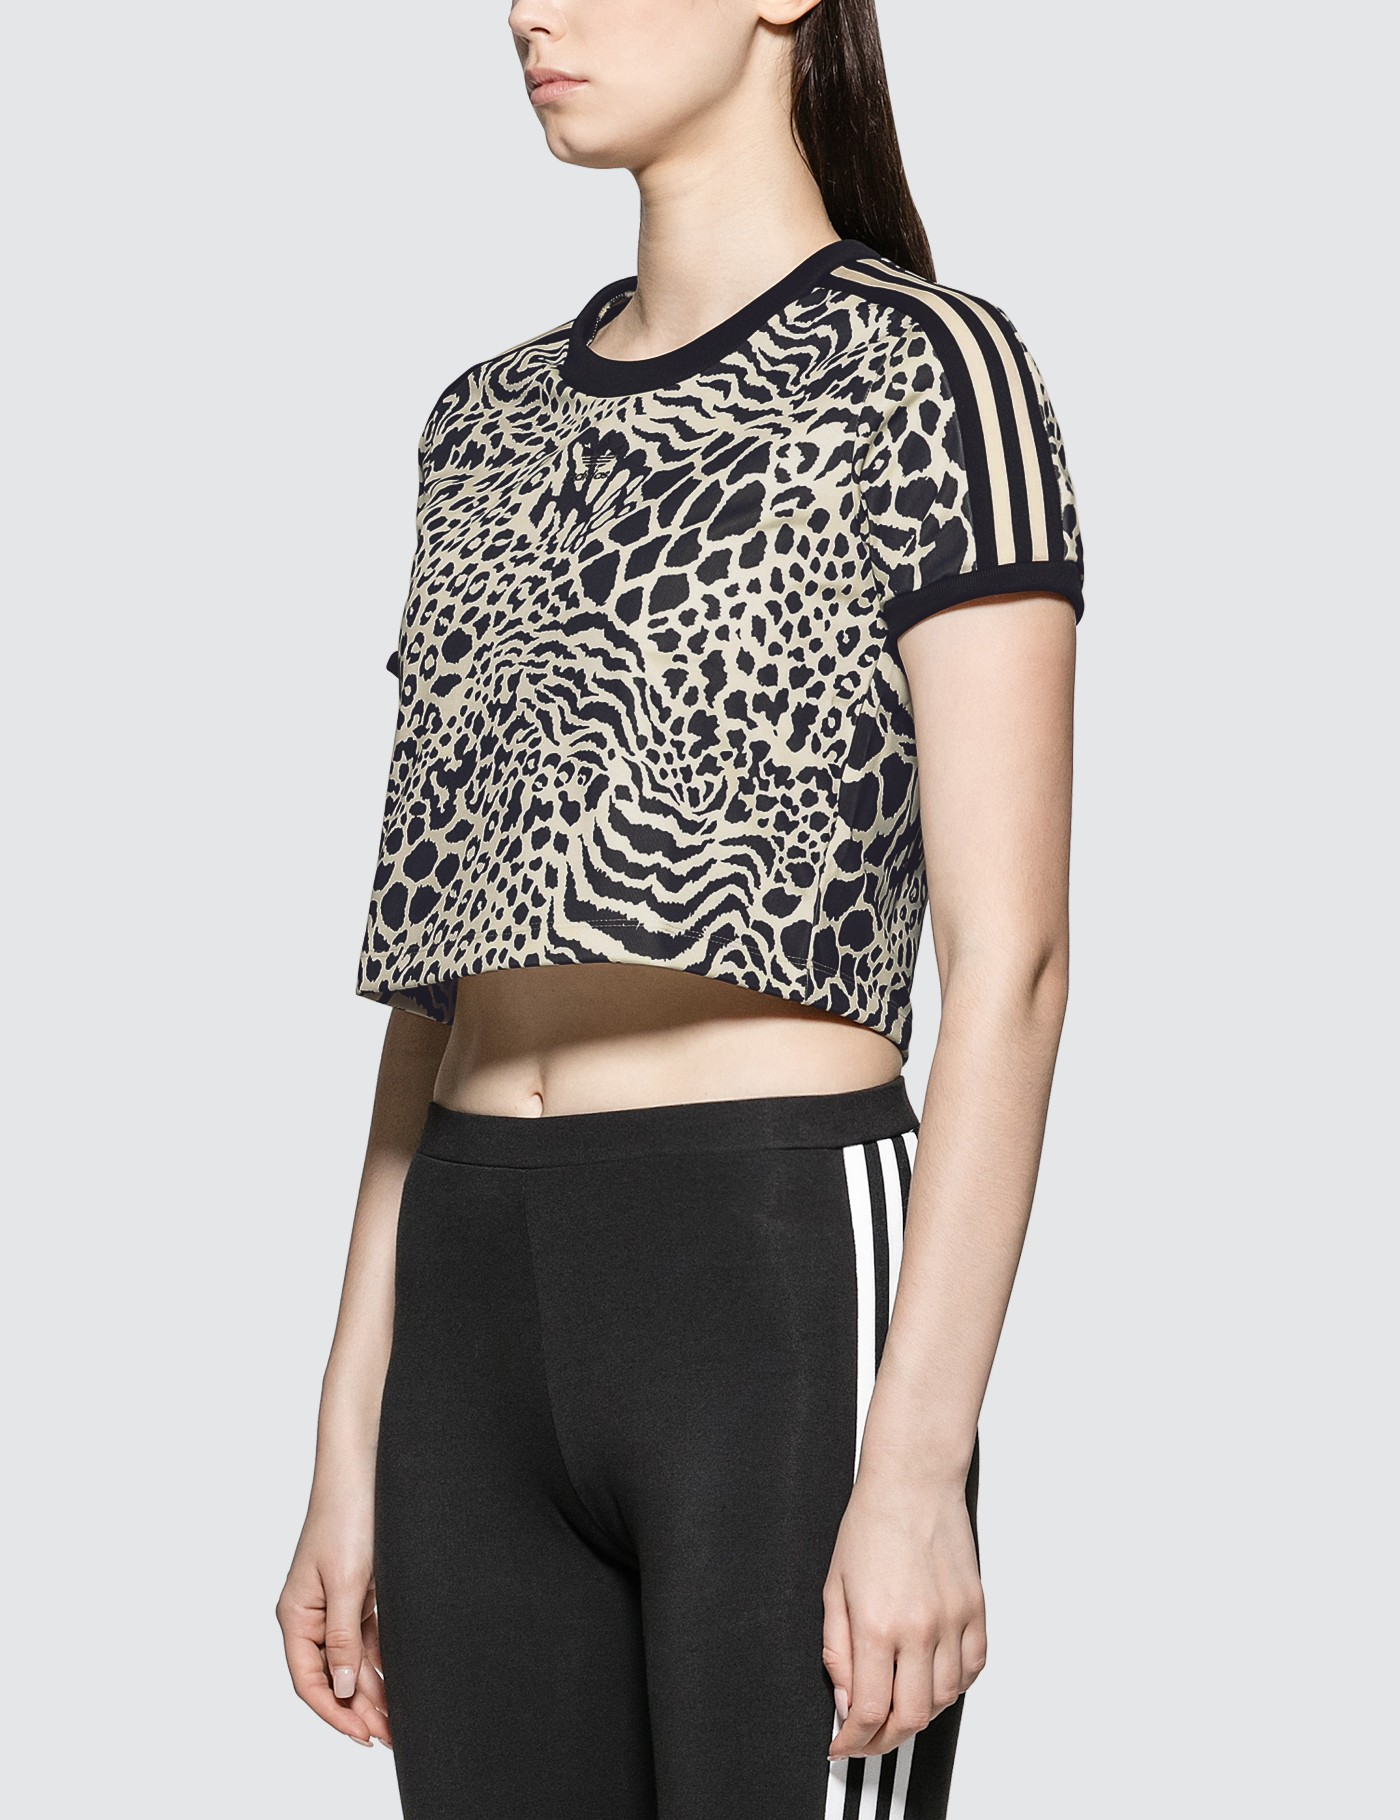 Adidas Originals Leopard Print 3 Stripes T-shirt